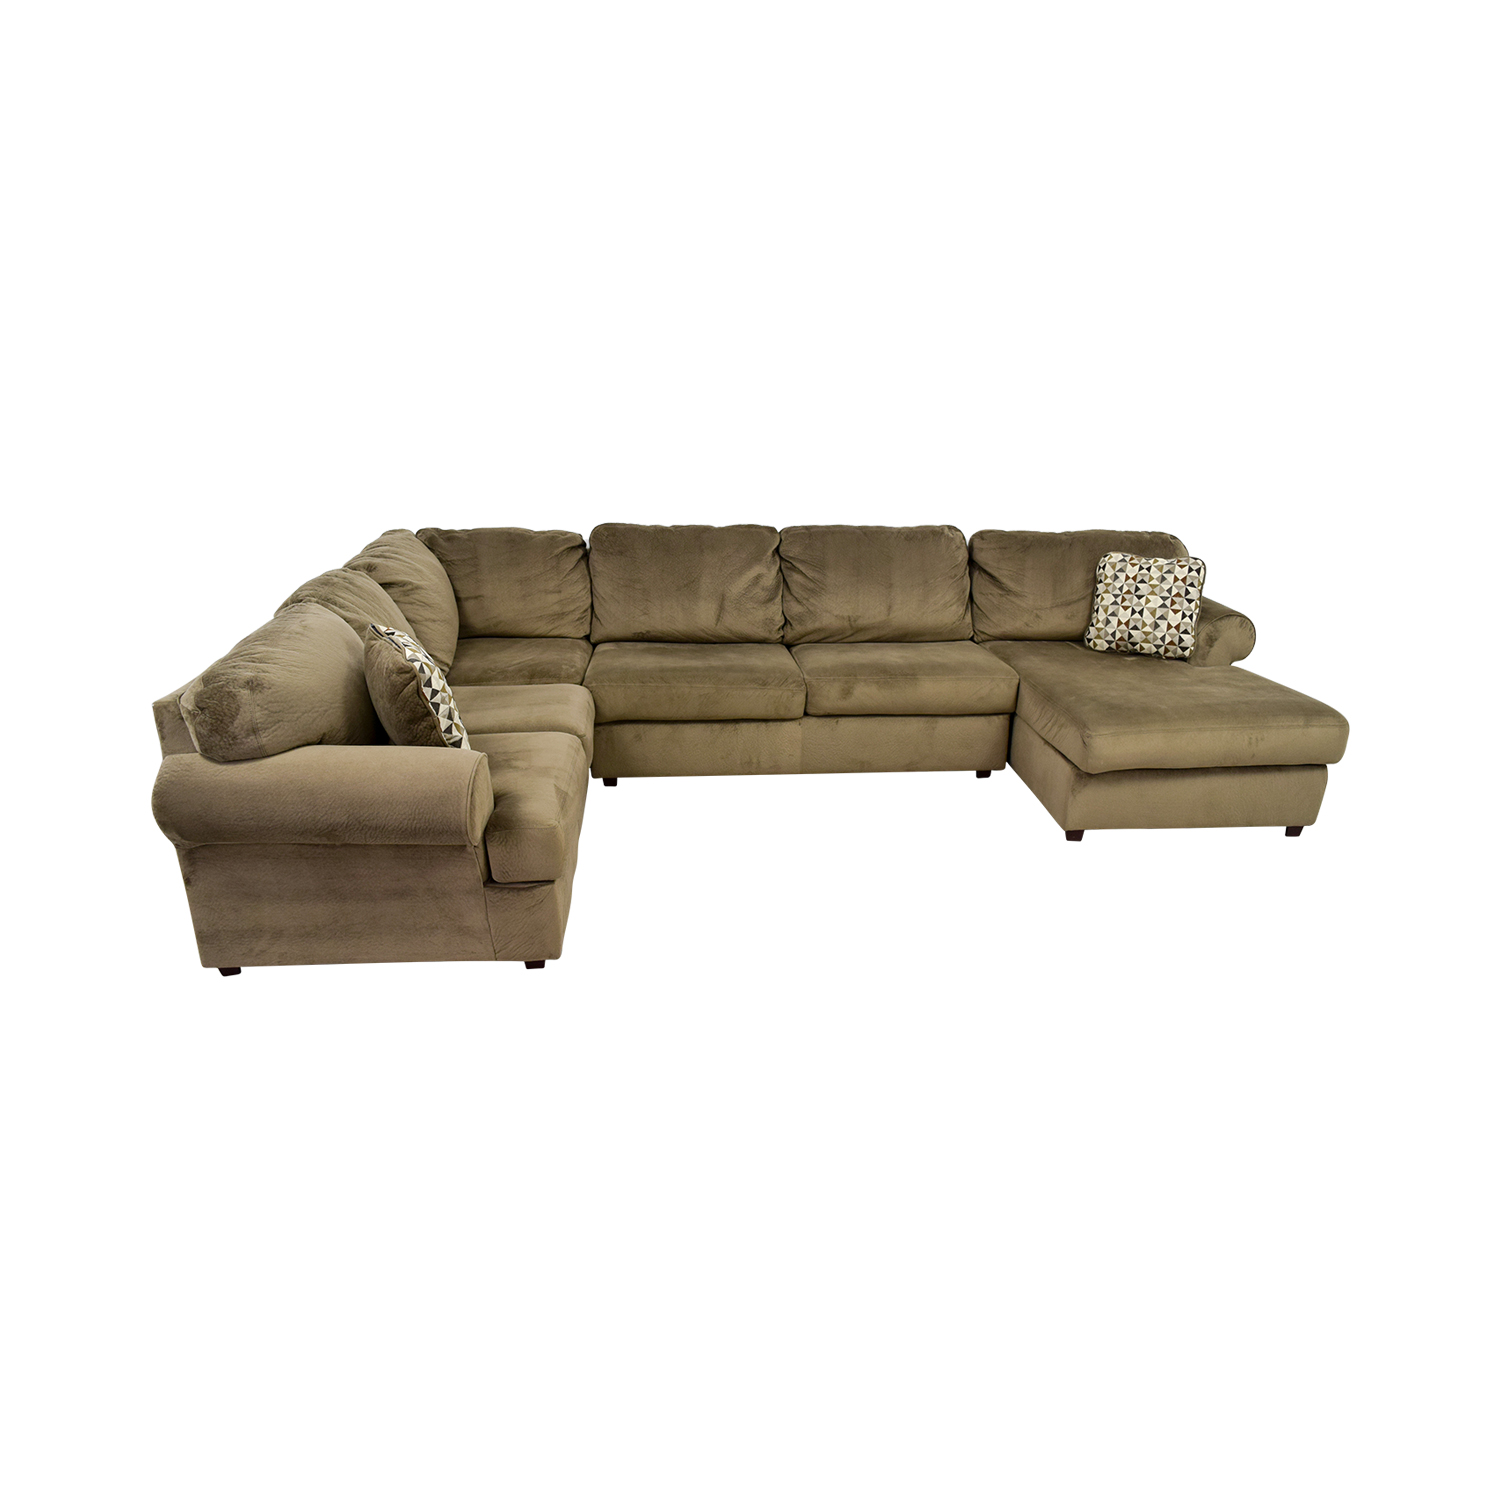 28% OFF Ashley Furniture Ashley Furniture Jessa Place Sectional